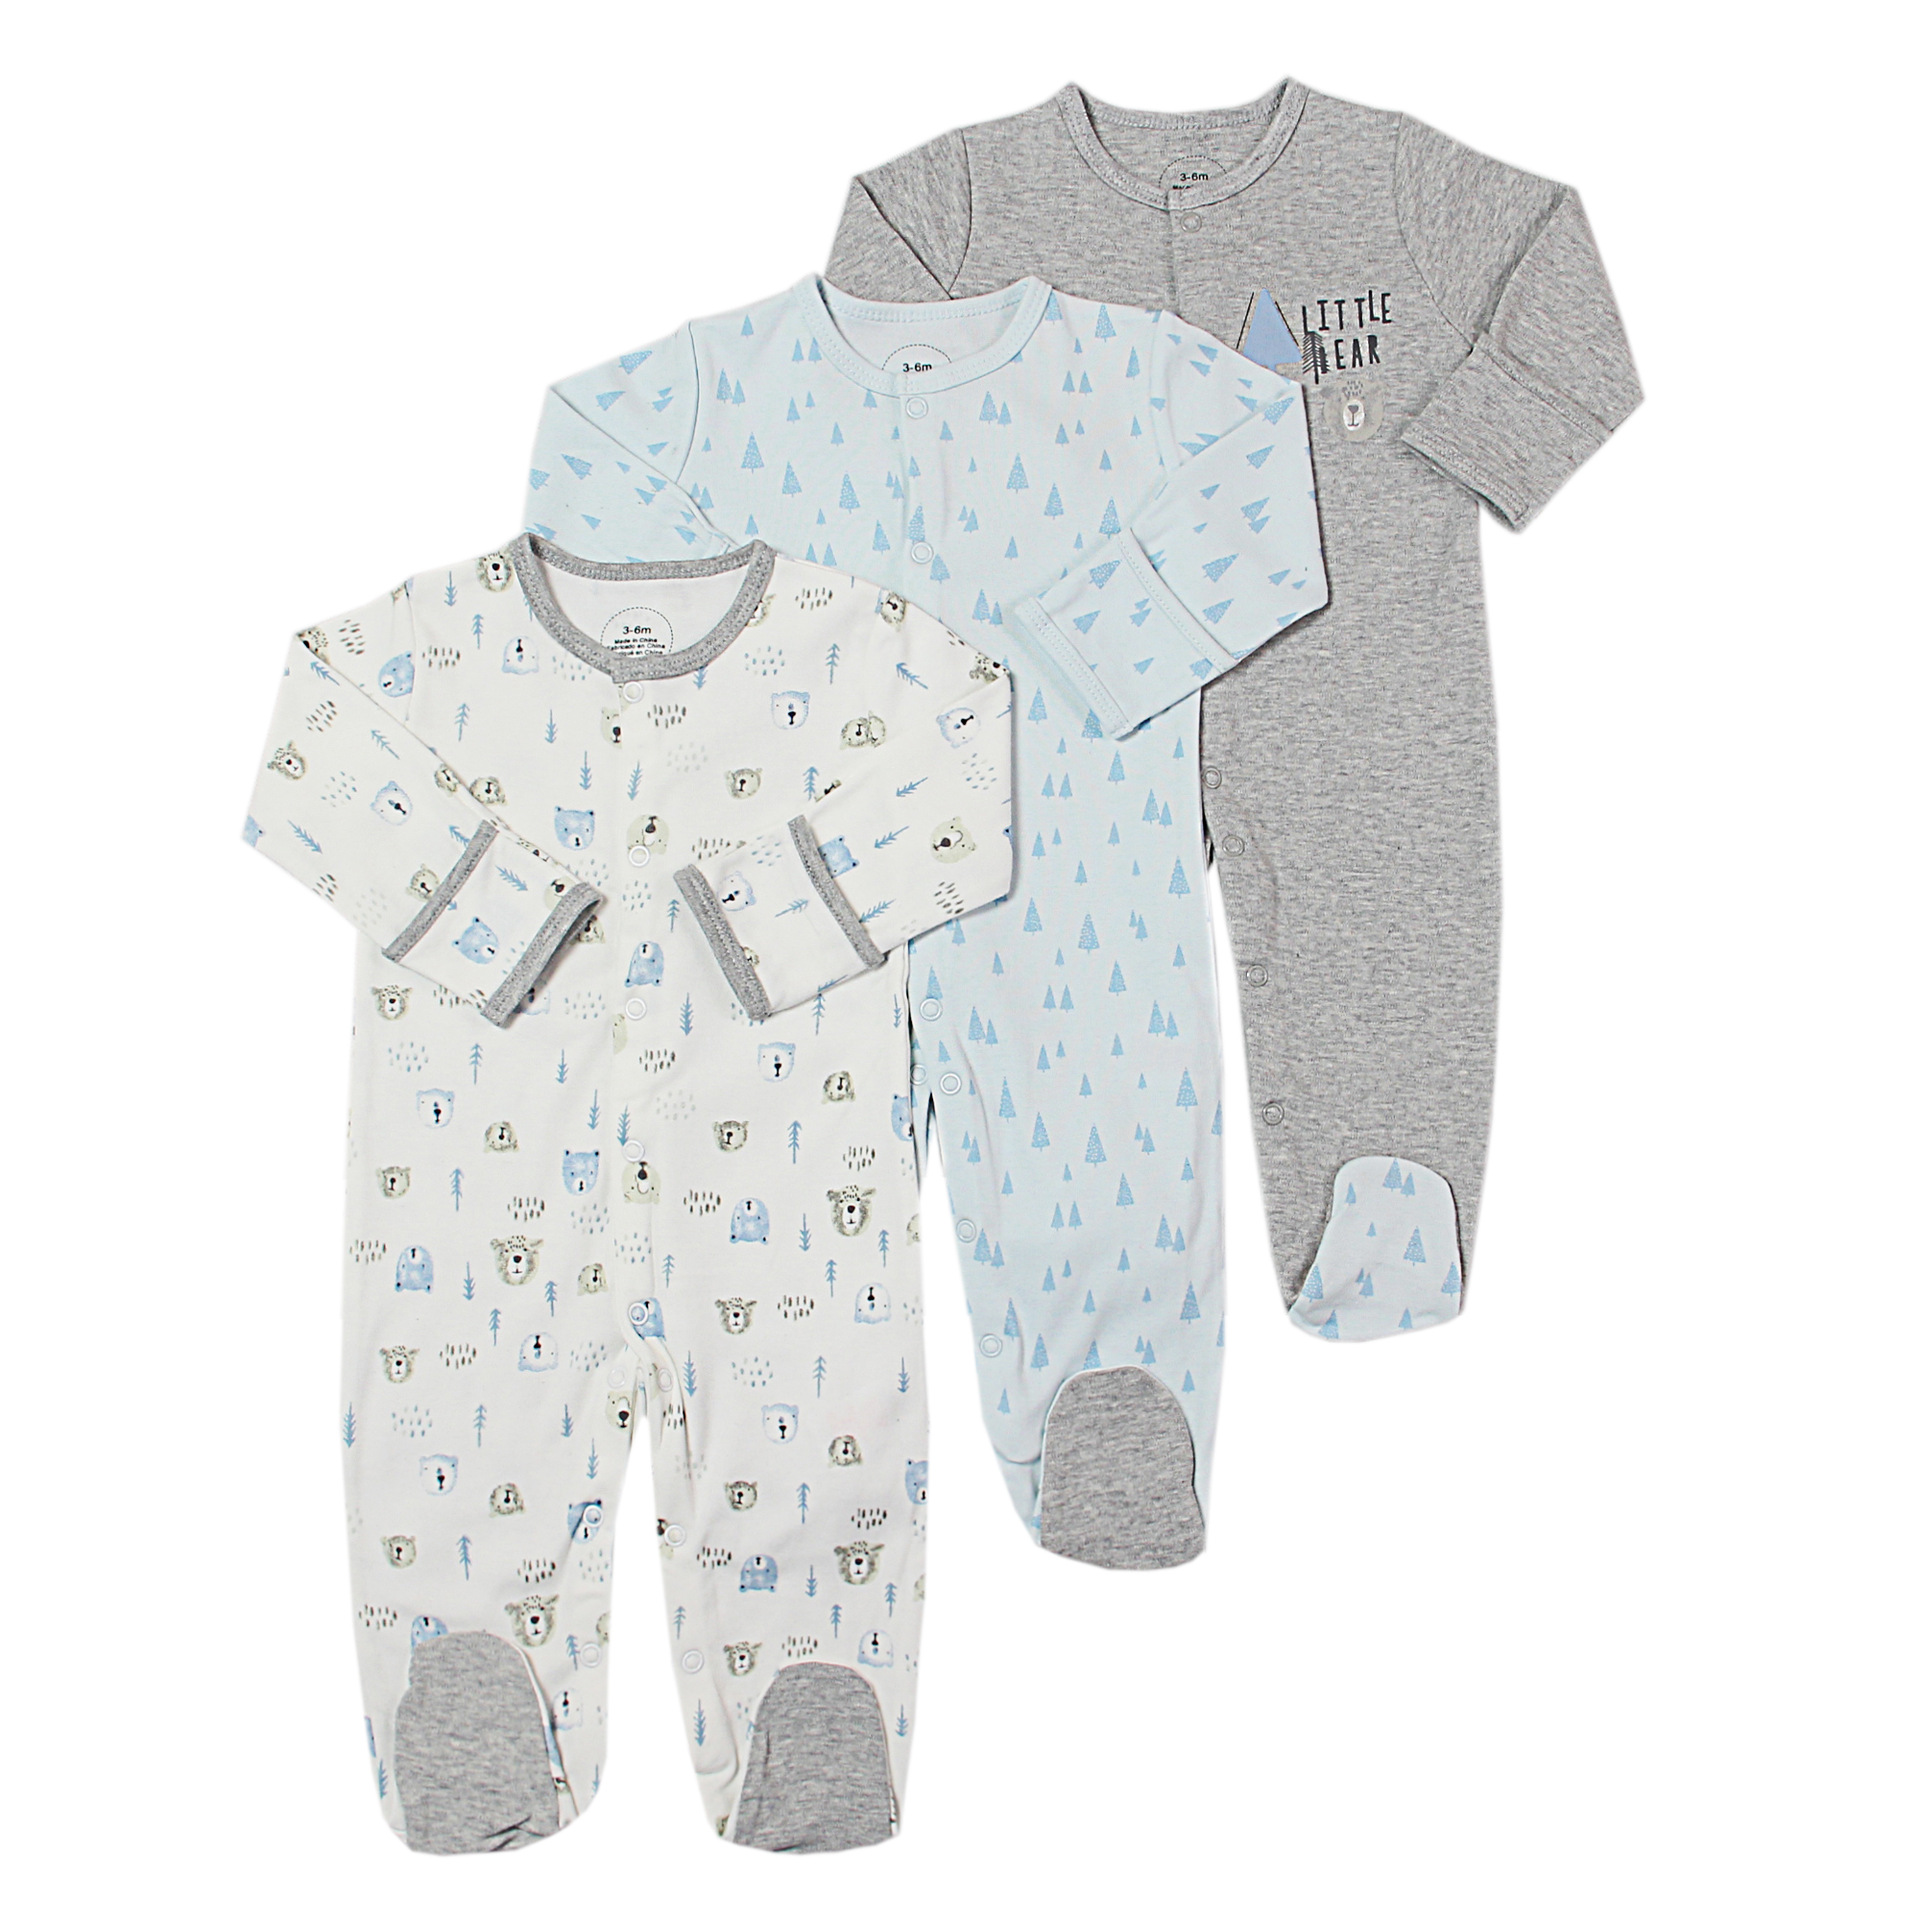 3Pcs/lot Baby Boys Rompers  Infant Newborn Long Sleeve Sleepsuit Girls Romper Cartoon Jumpsuit  Baby Pajamas 0-12Months